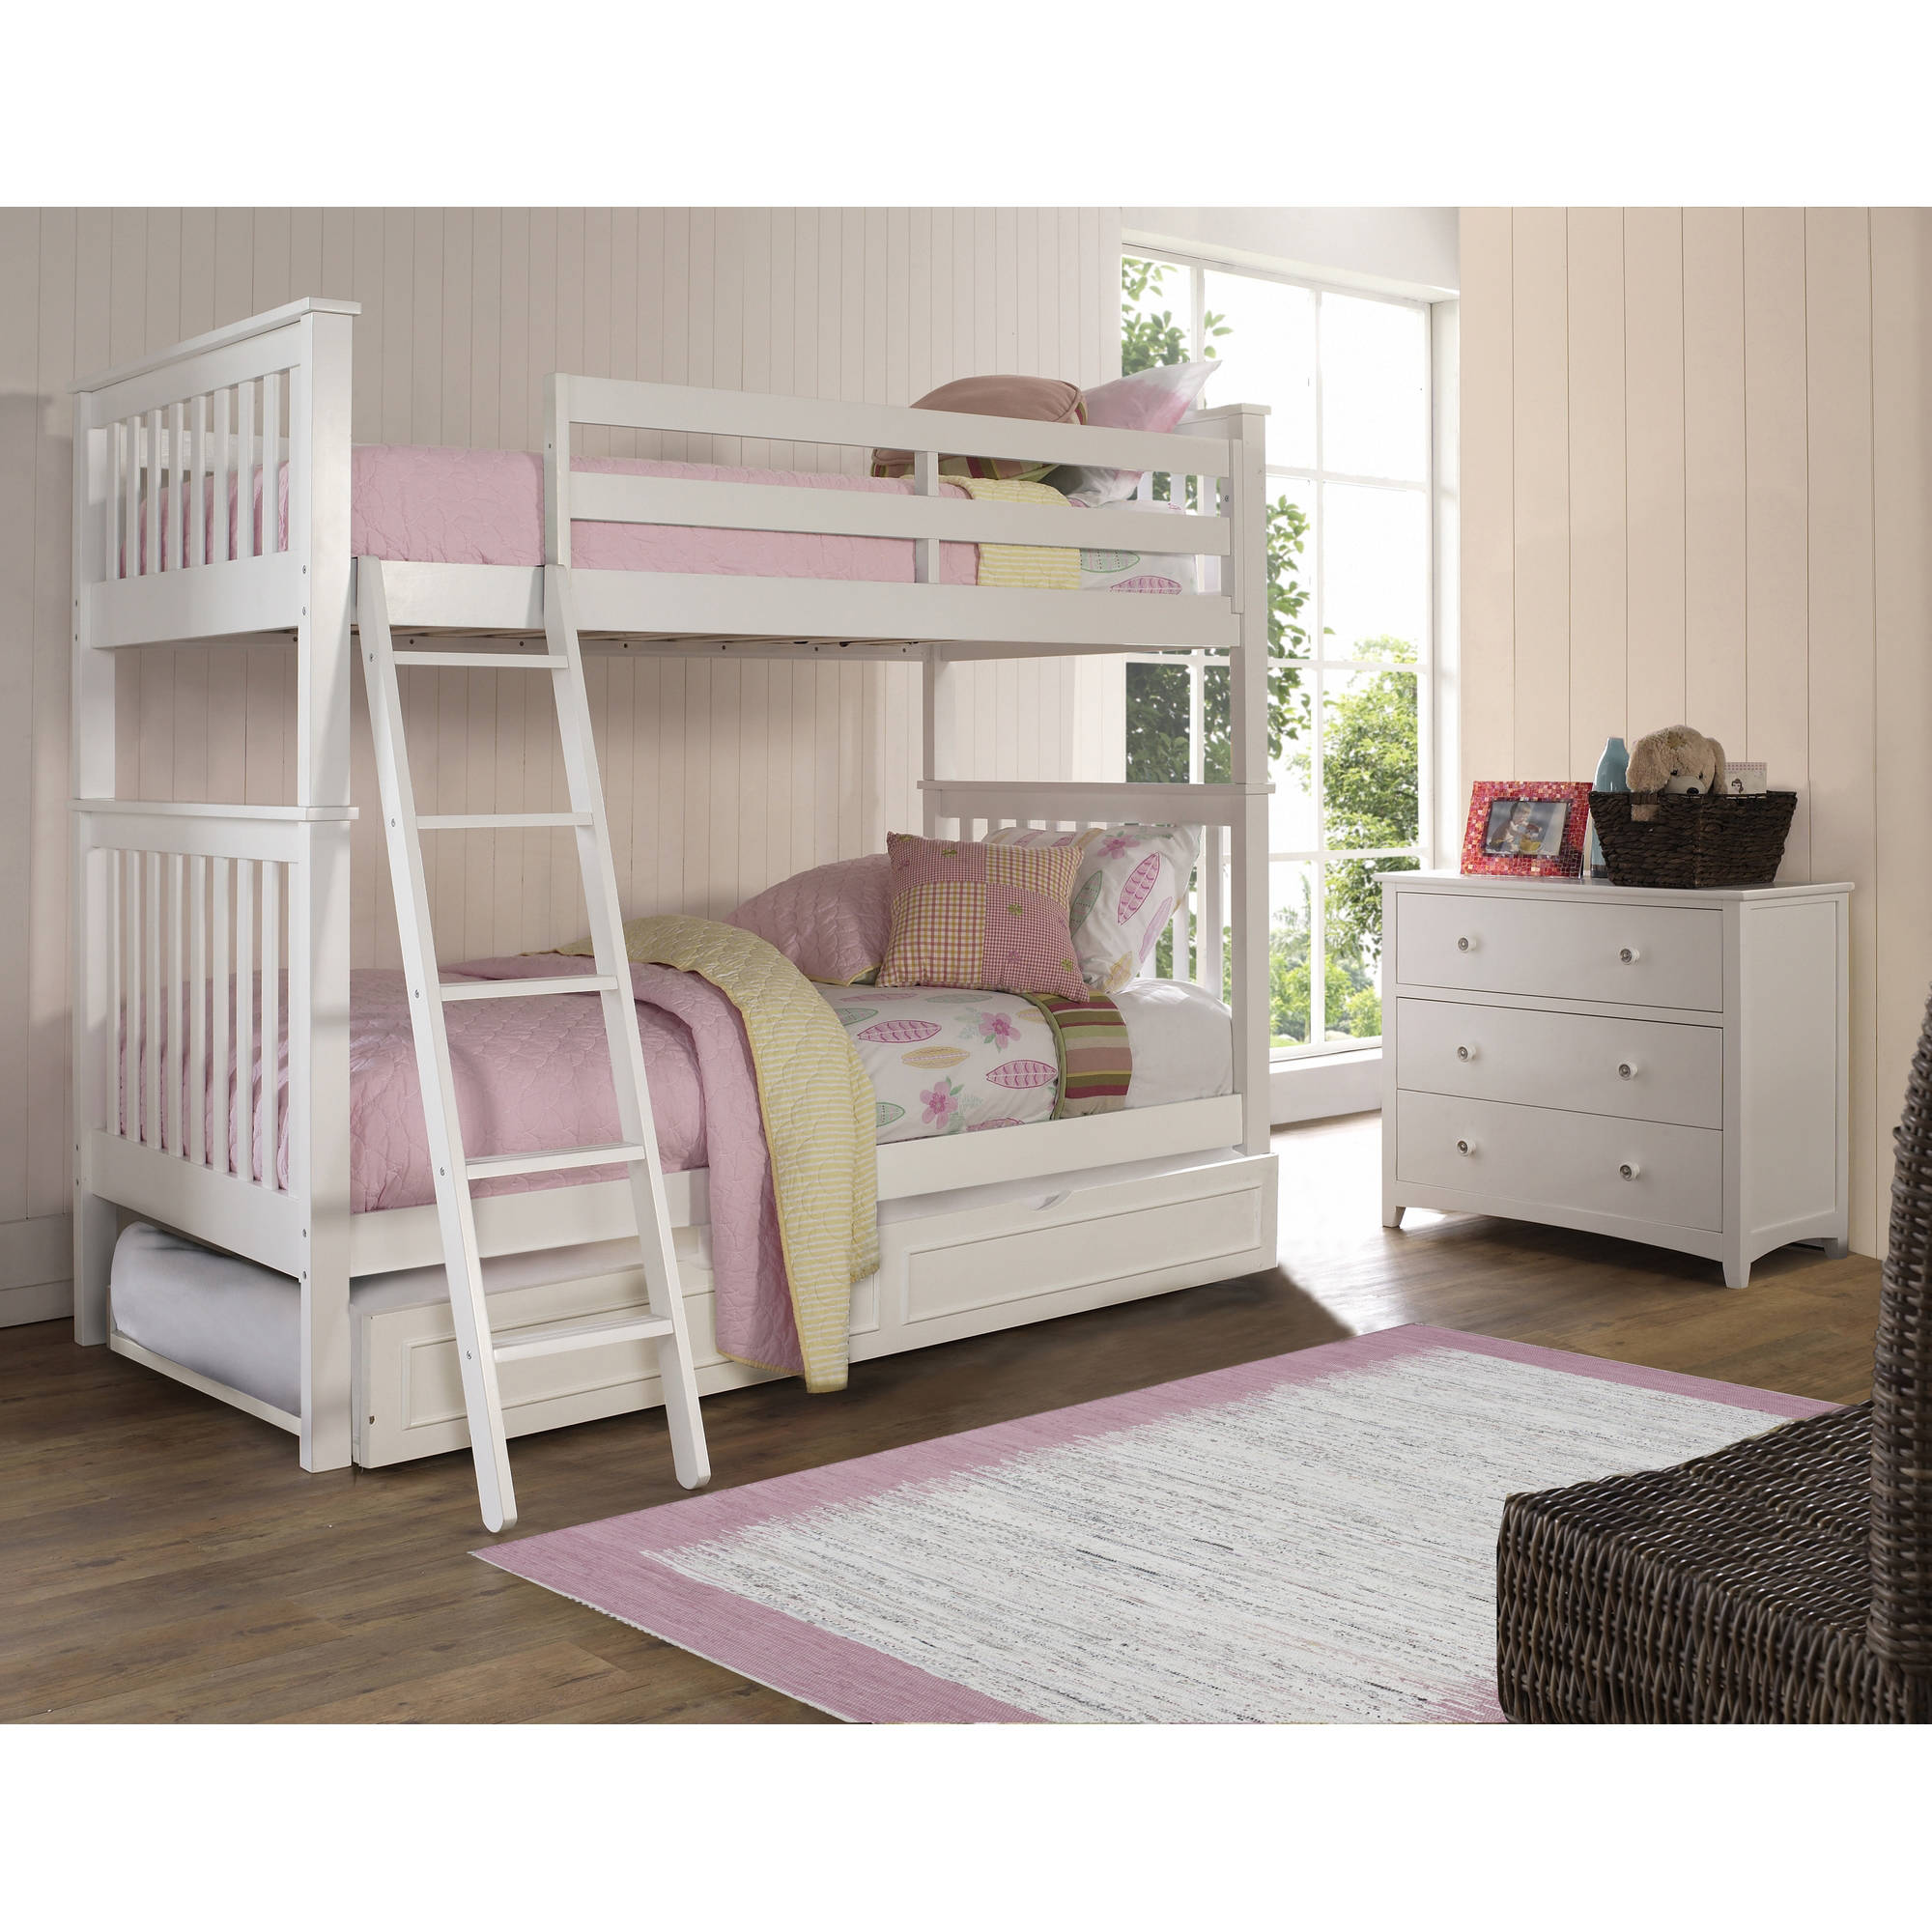 Hillsdale Furniture Barrett Bunk Bed with Trundle, Multiple Sizes and Colors